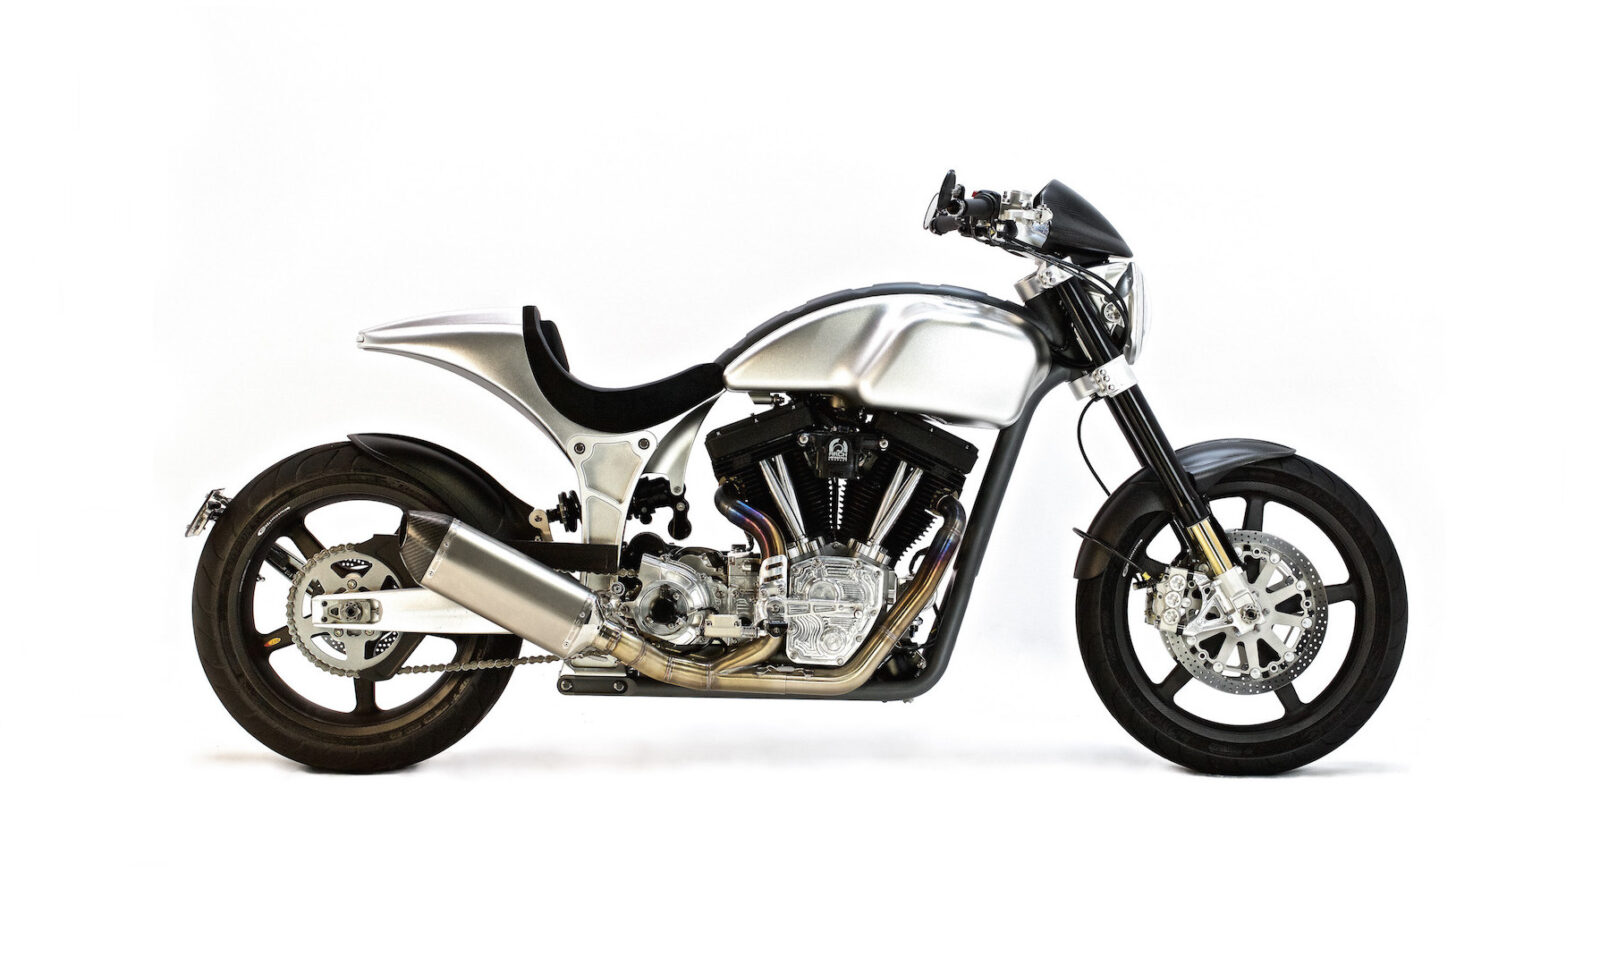 KRGT-1 by Arch Motorcycles